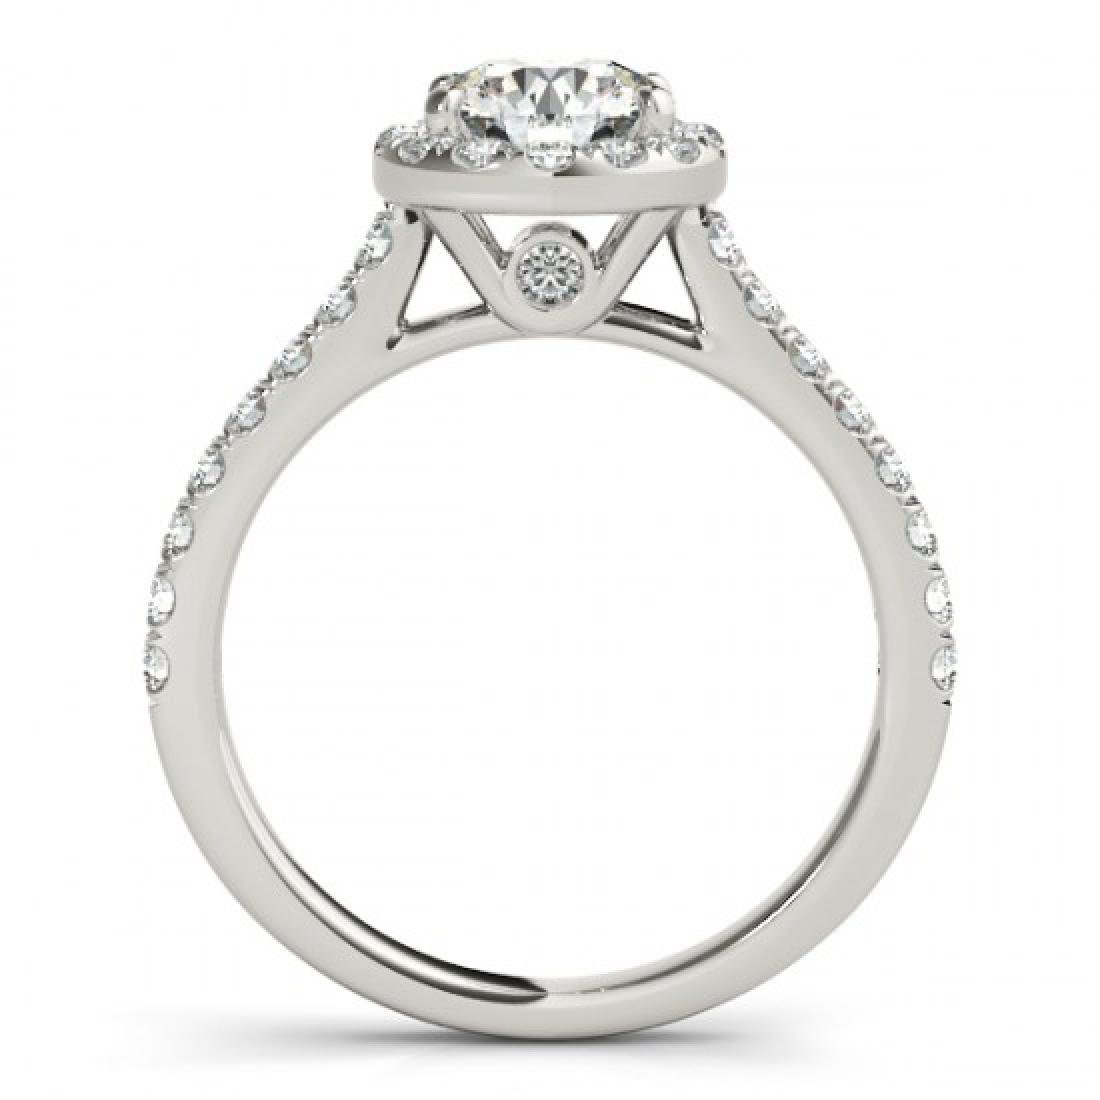 1.7 CTW Certified VS/SI Diamond Solitaire Halo Ring 14K - 2